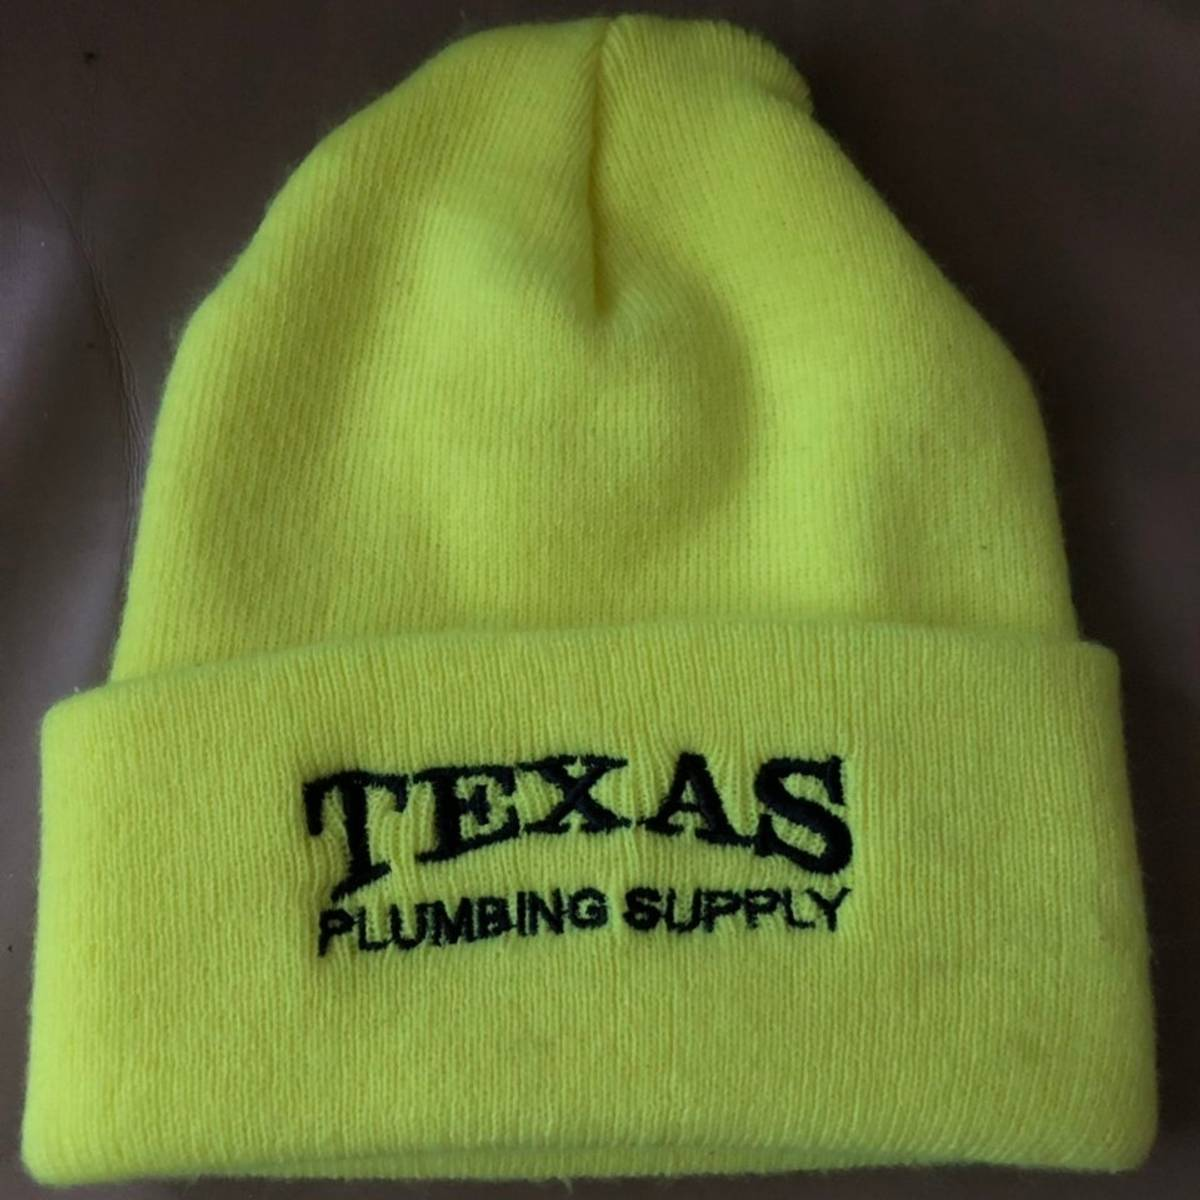 Hat × Thrifted × Vintage Texas Plumbing Supply Neon Green / Neon Yellow  Safety Green Beanie With Black Lettering Size One Size $15